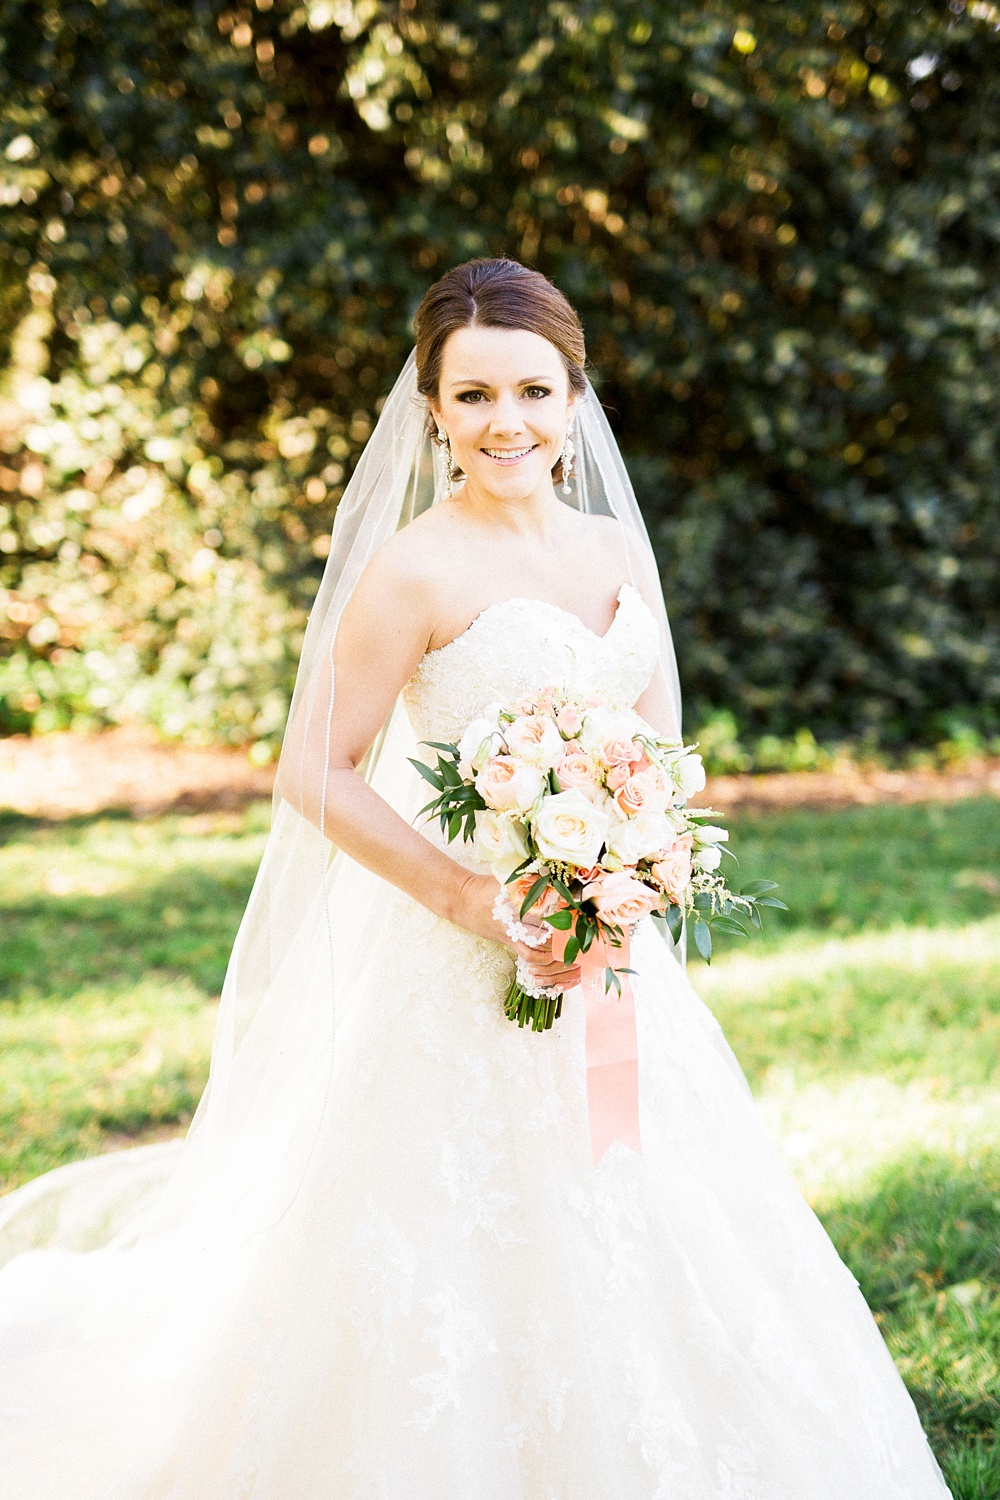 Rachael Bowman Photography-Greensboro Arboretum-Greensboro-North Carolina-Bridal Session-Photographer-Photo-_0020.jpg